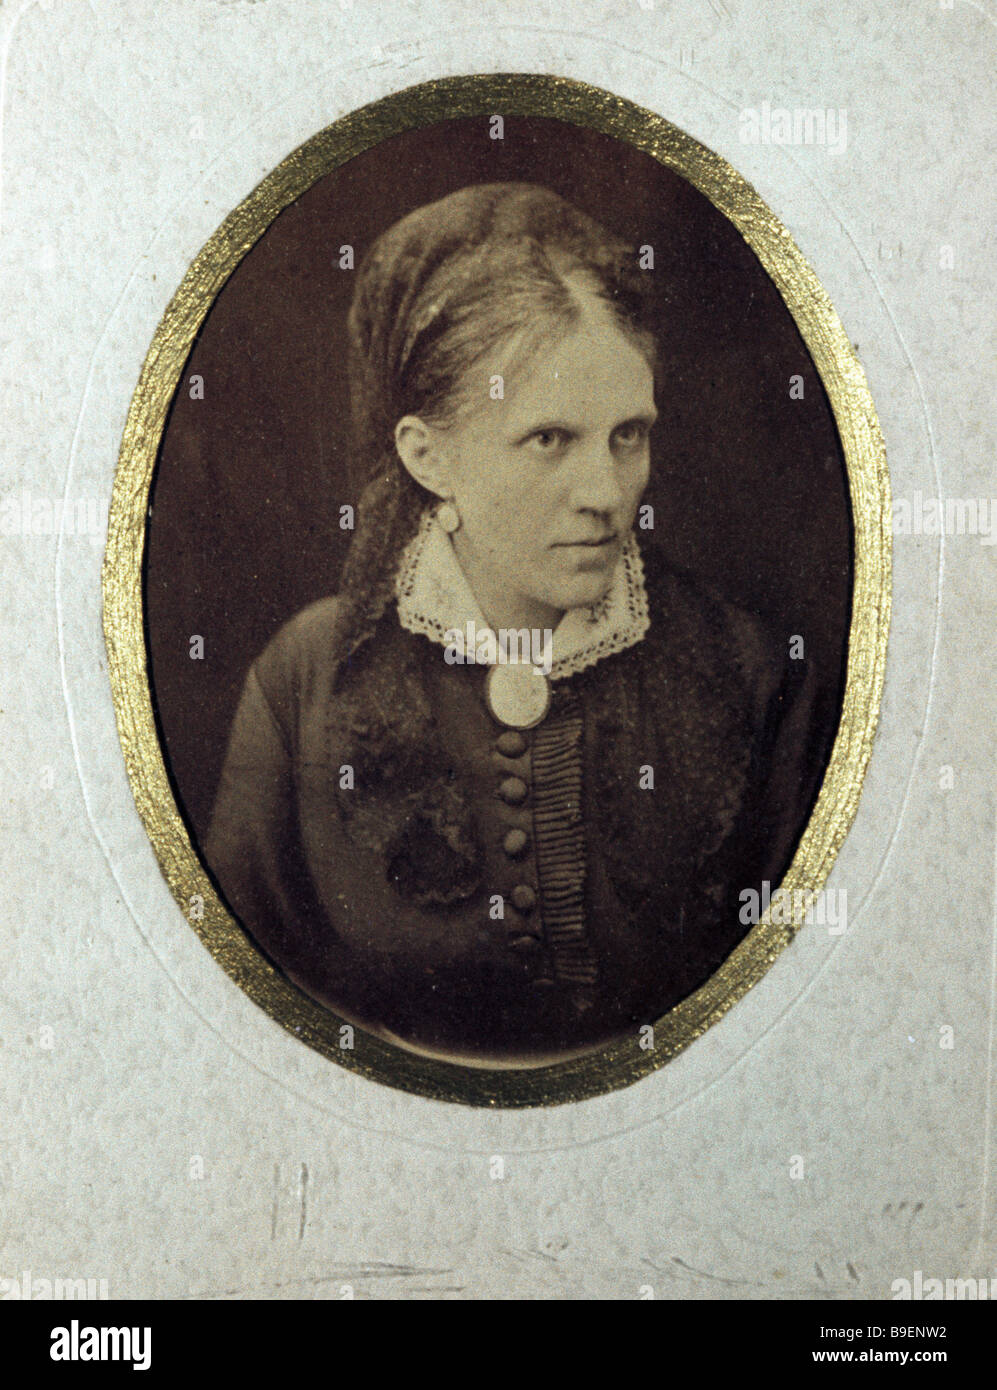 Photograph of Fedor Dostoyevsky s wife Anna Dostoyevskaya from the collection of the Fedor Dostoyevsky Museum Apartment - Stock Image